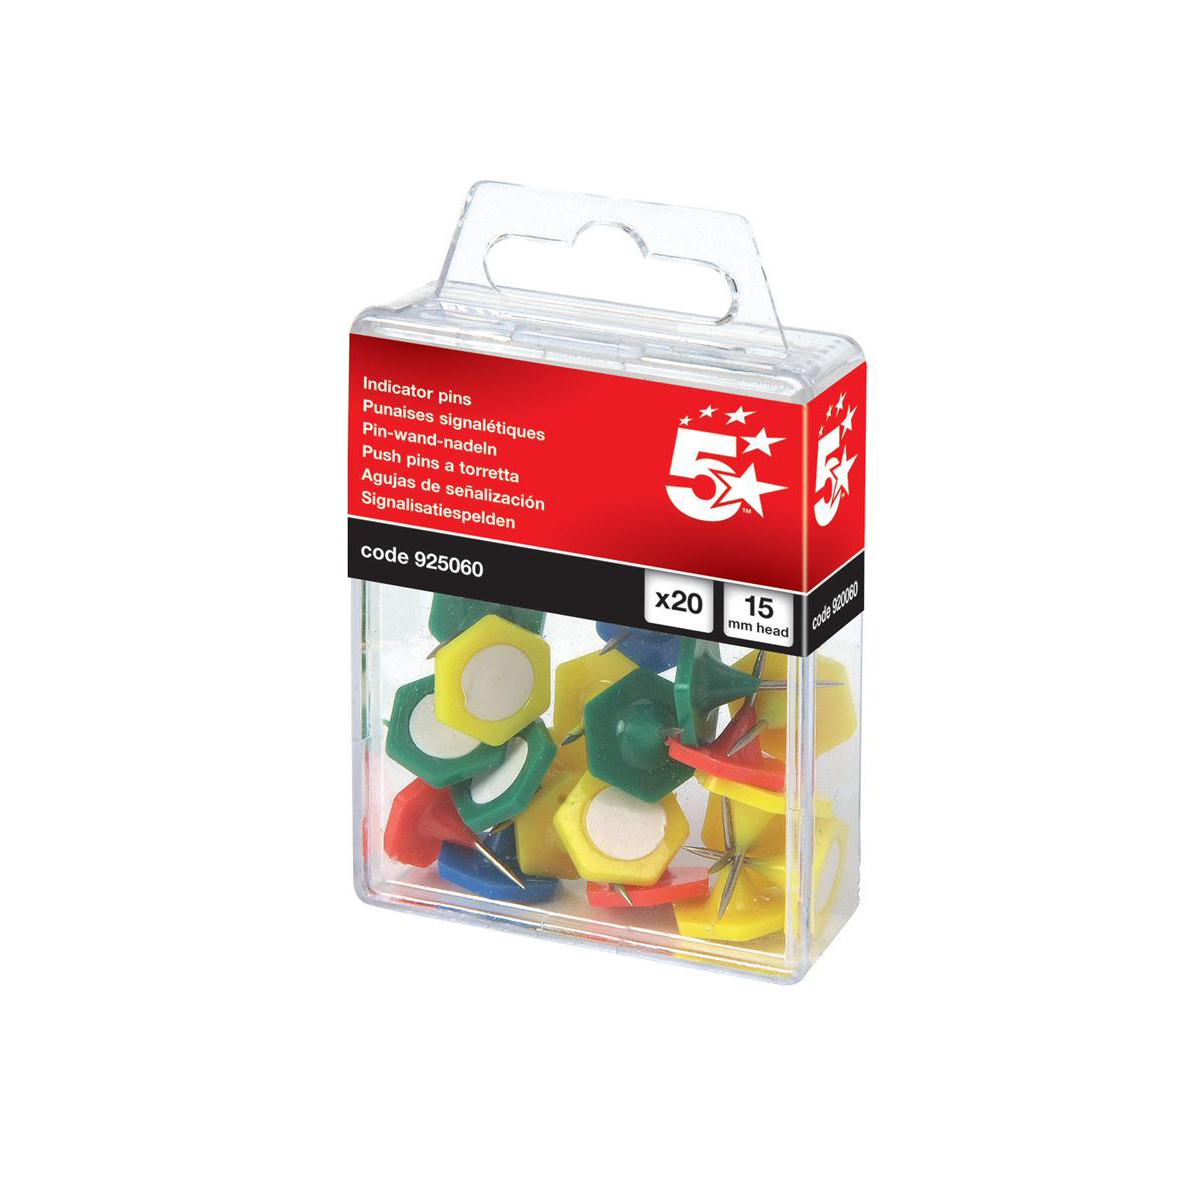 5 Star Office Indicator Pins 15mm Head Assorted Pack 20